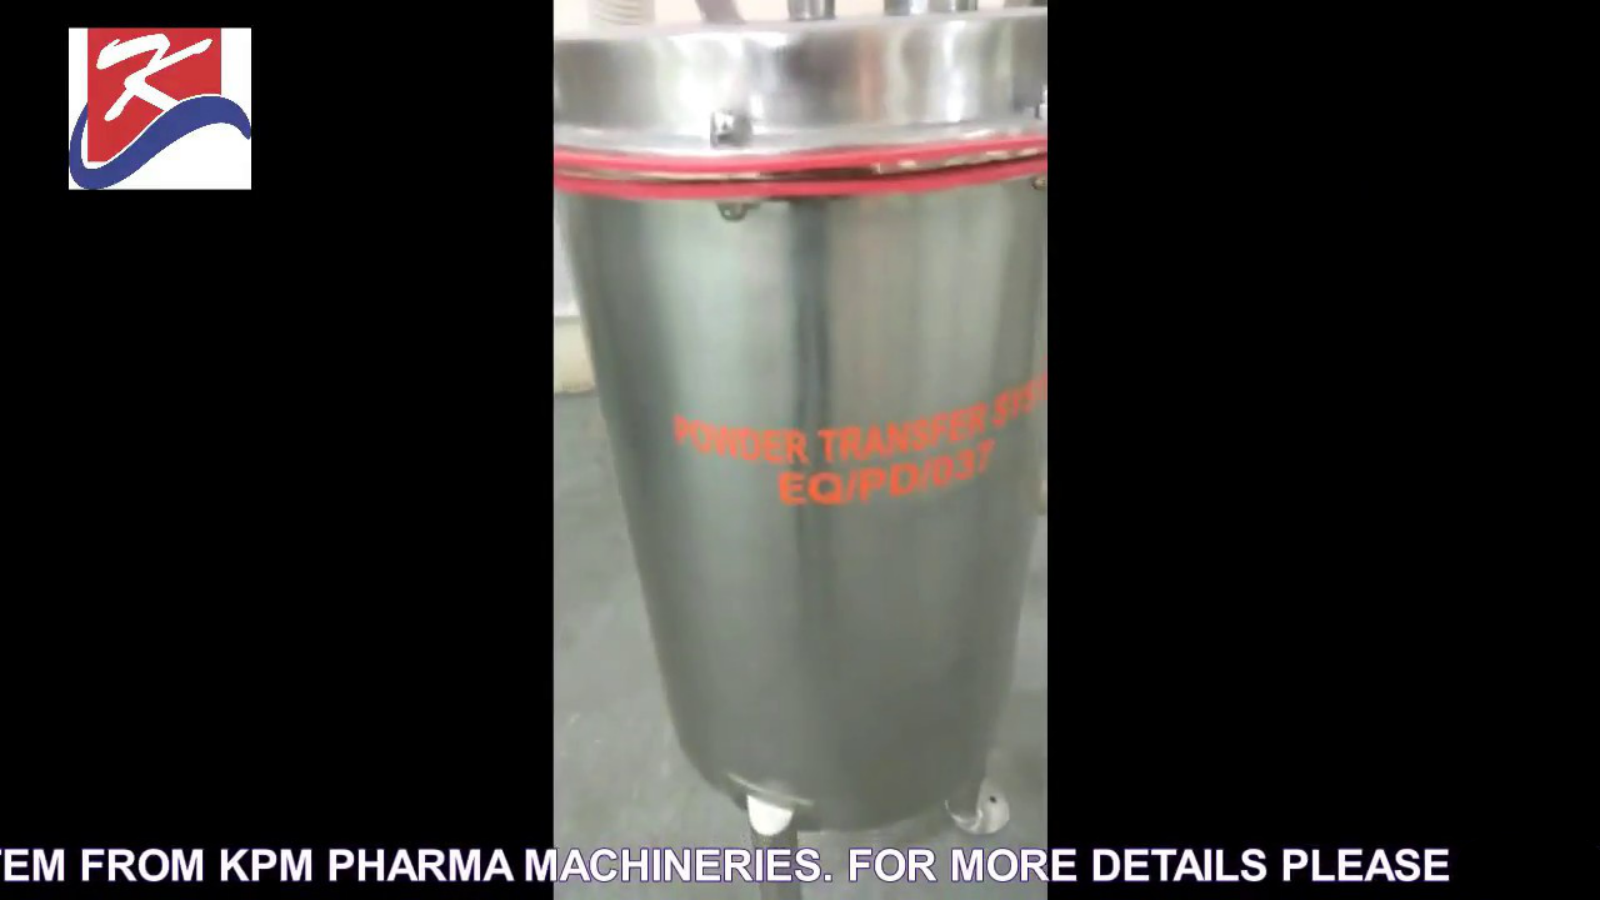 Octagonal Blender with Vacuum Powder Transfer System From KPM Pharma Machineries